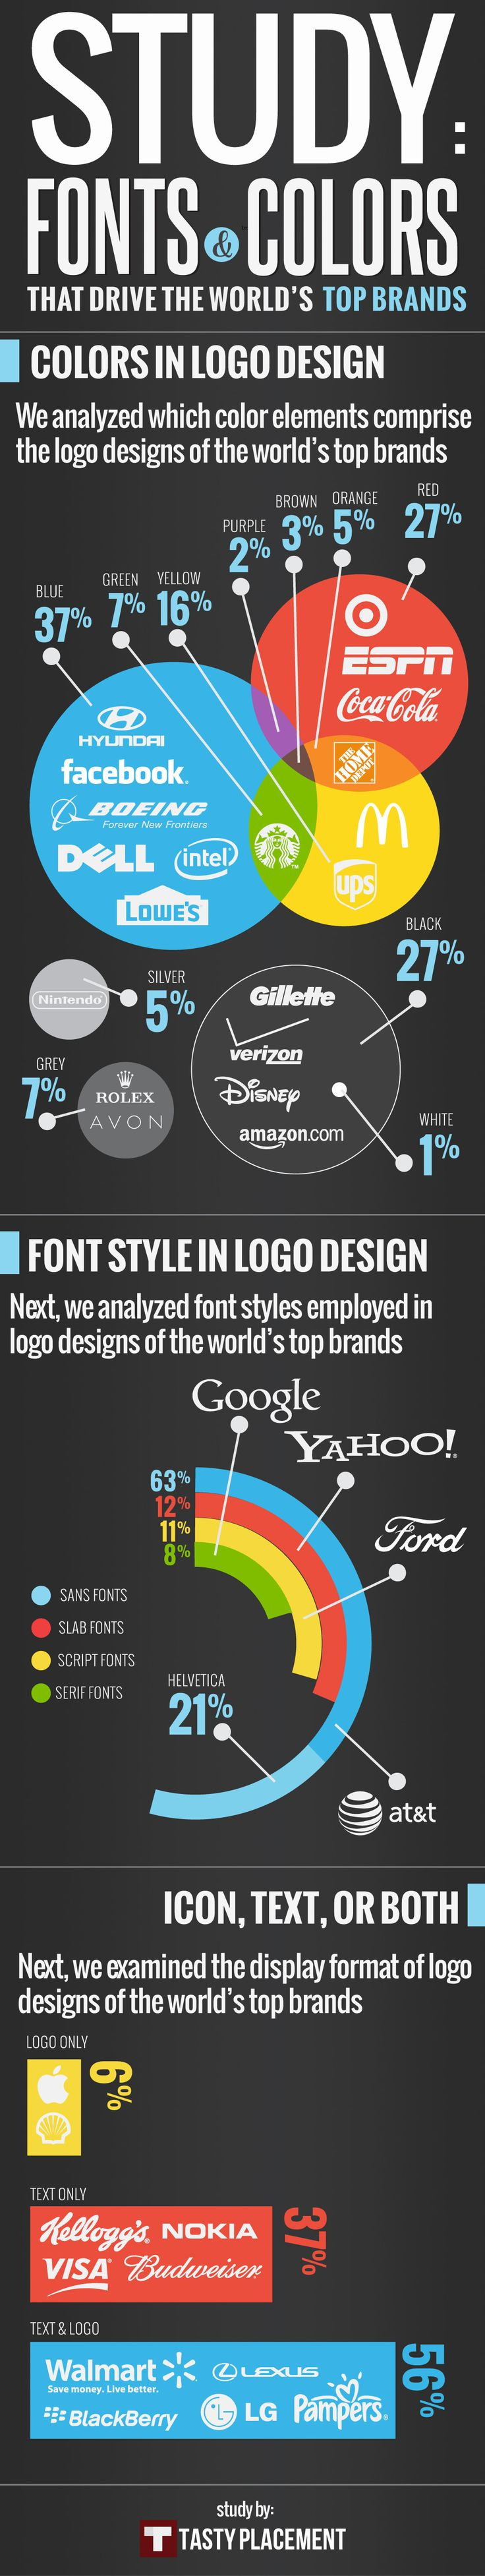 Logo & Font Color Infographic